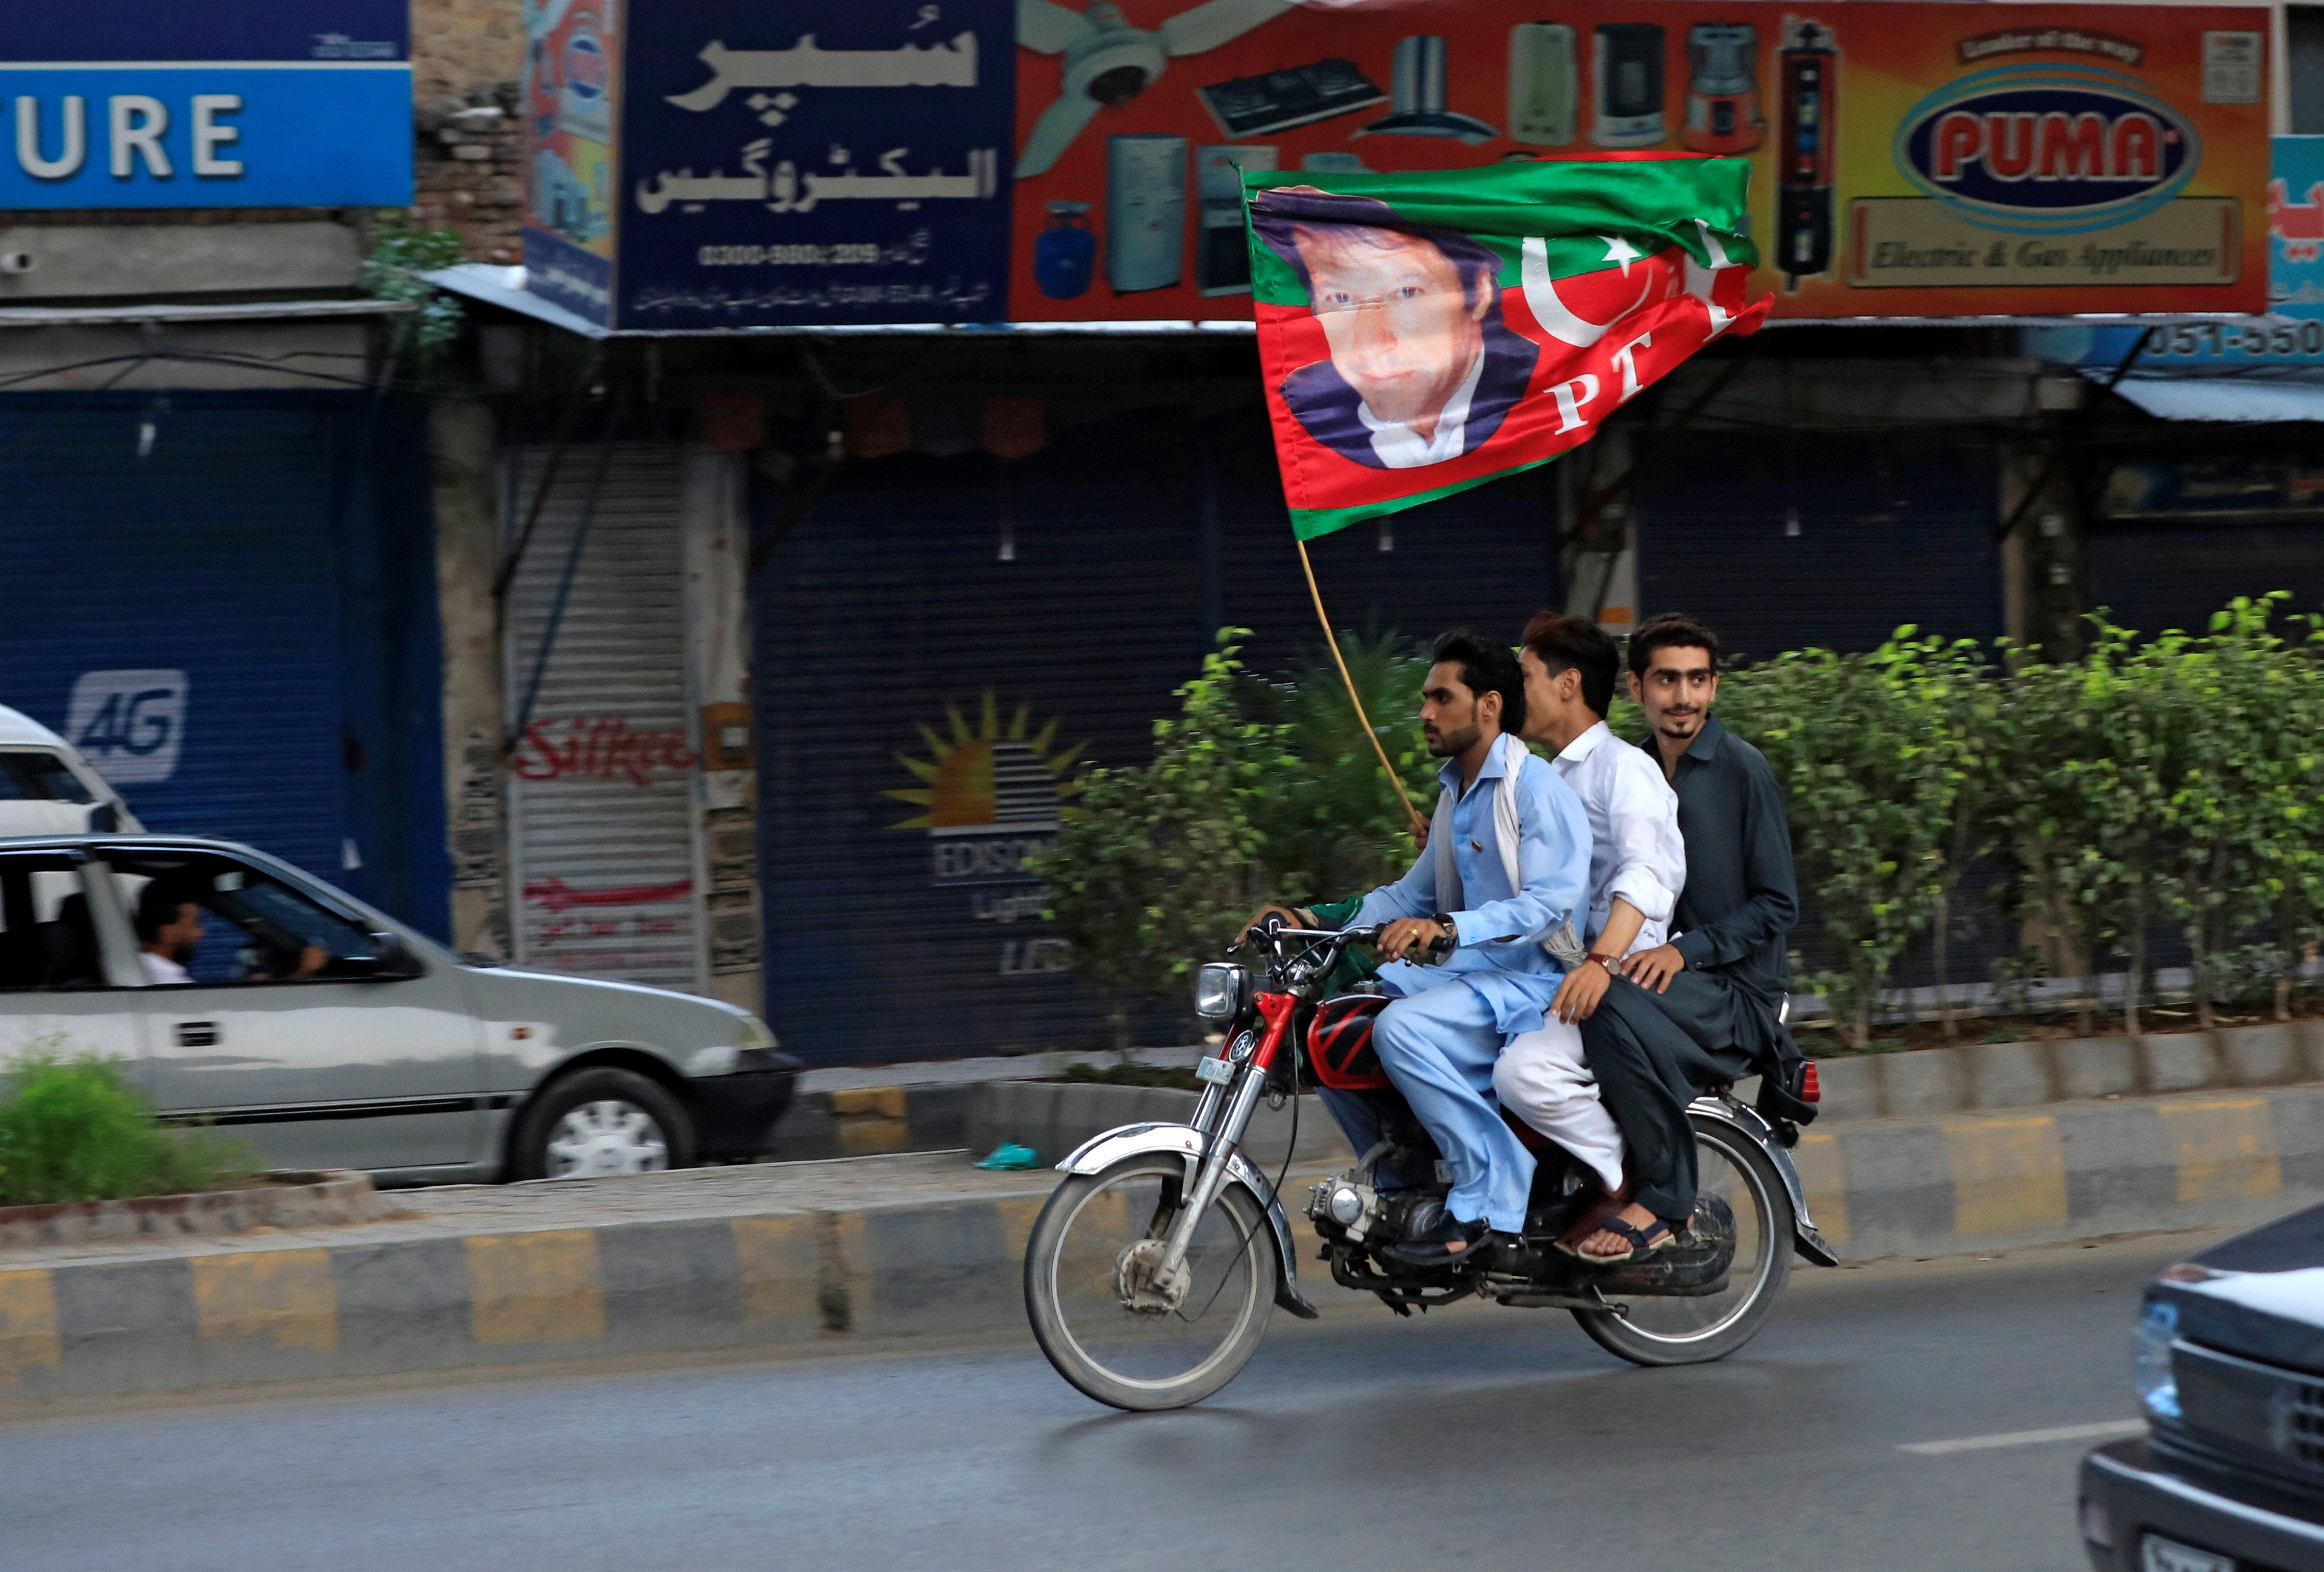 Supporters of Imran Khan, chairman of the Pakistan Tehreek-e-Insaf (PTI), political party wave a party flag as they celebrate during the general election in Rawalpindi, Pakistan July 25, 2018. Faisal Mahmood